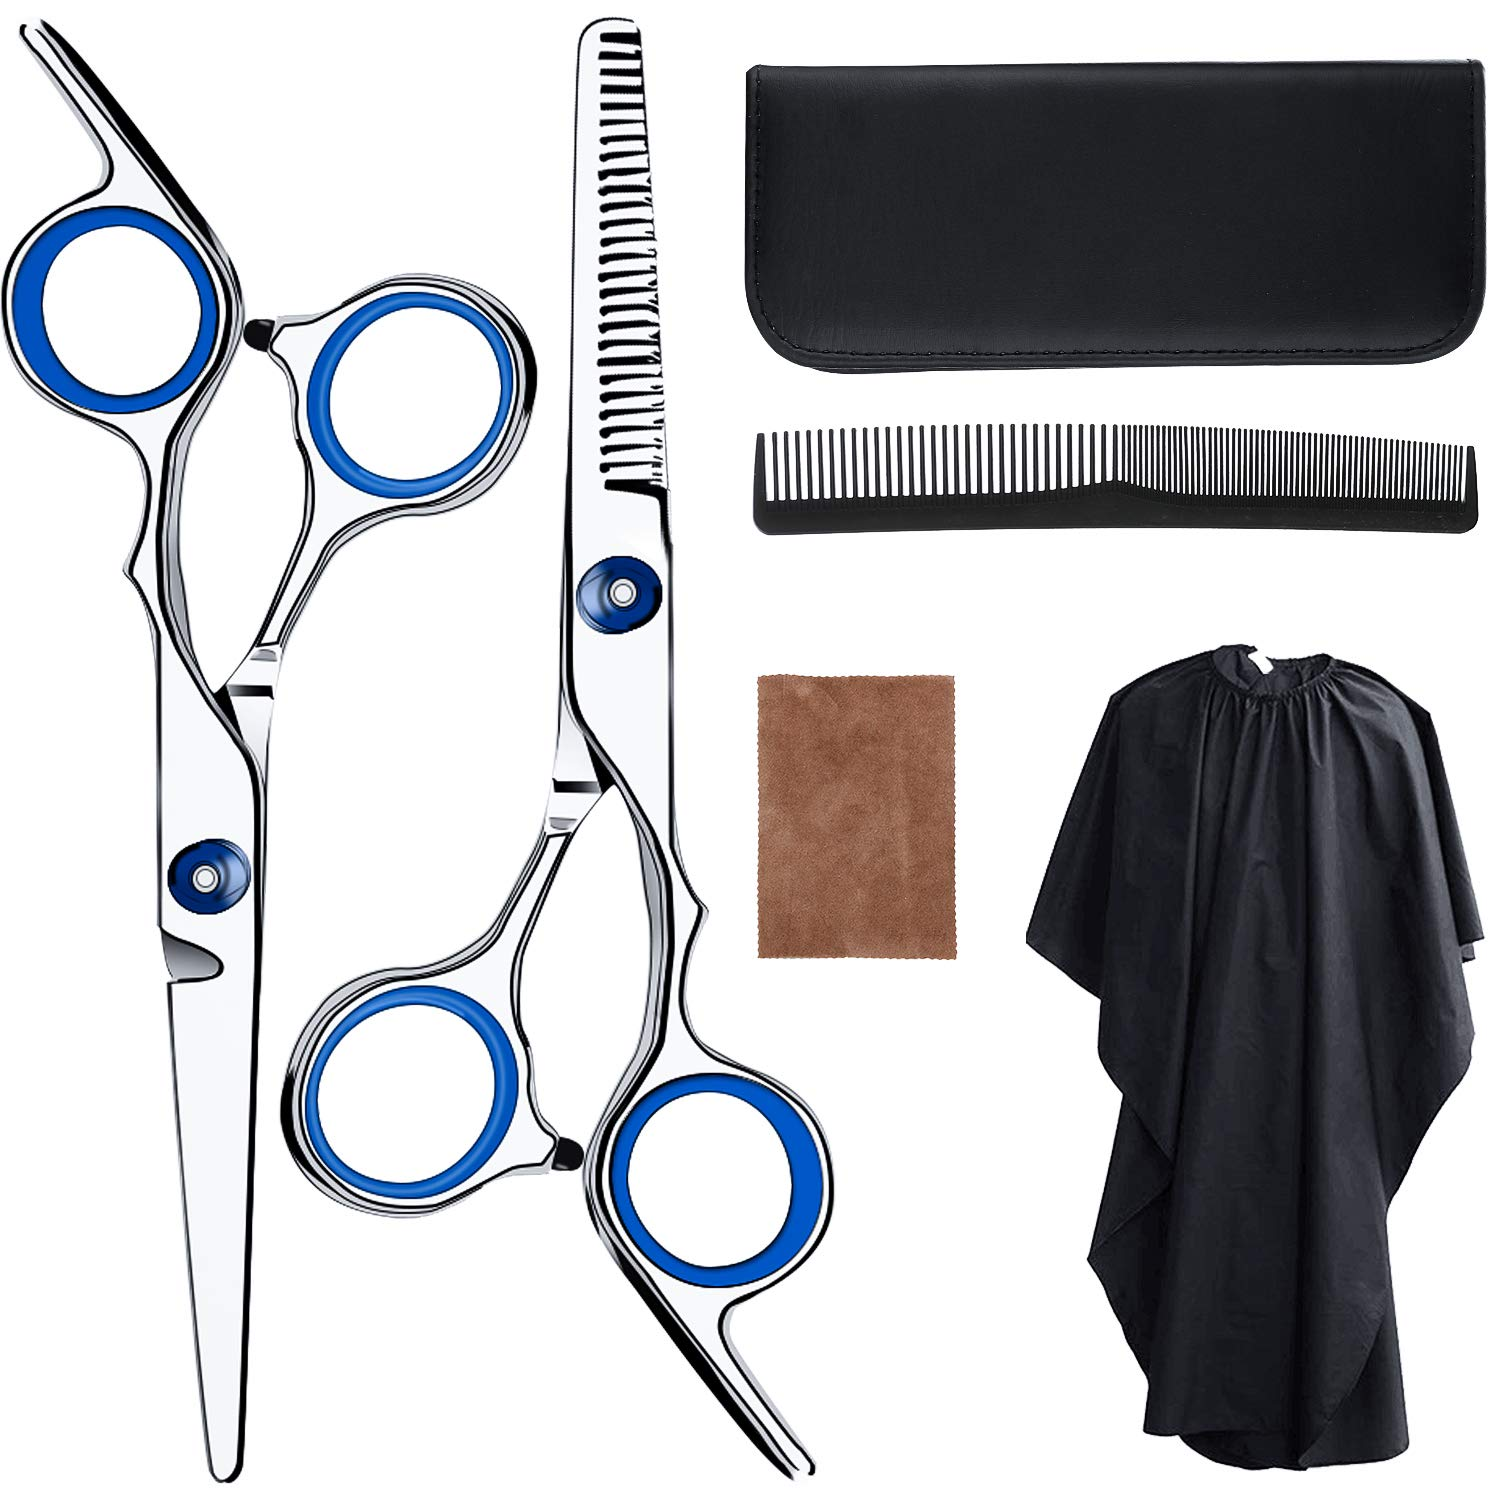 Hair Cutting Scissors Professional Barber Shears Thinning Scissors Super Sharp Stainless Steel Hairdressing Scissors Set with Cape Cleaning Cloth Comb for Barber Salon and Home Use by Yansu